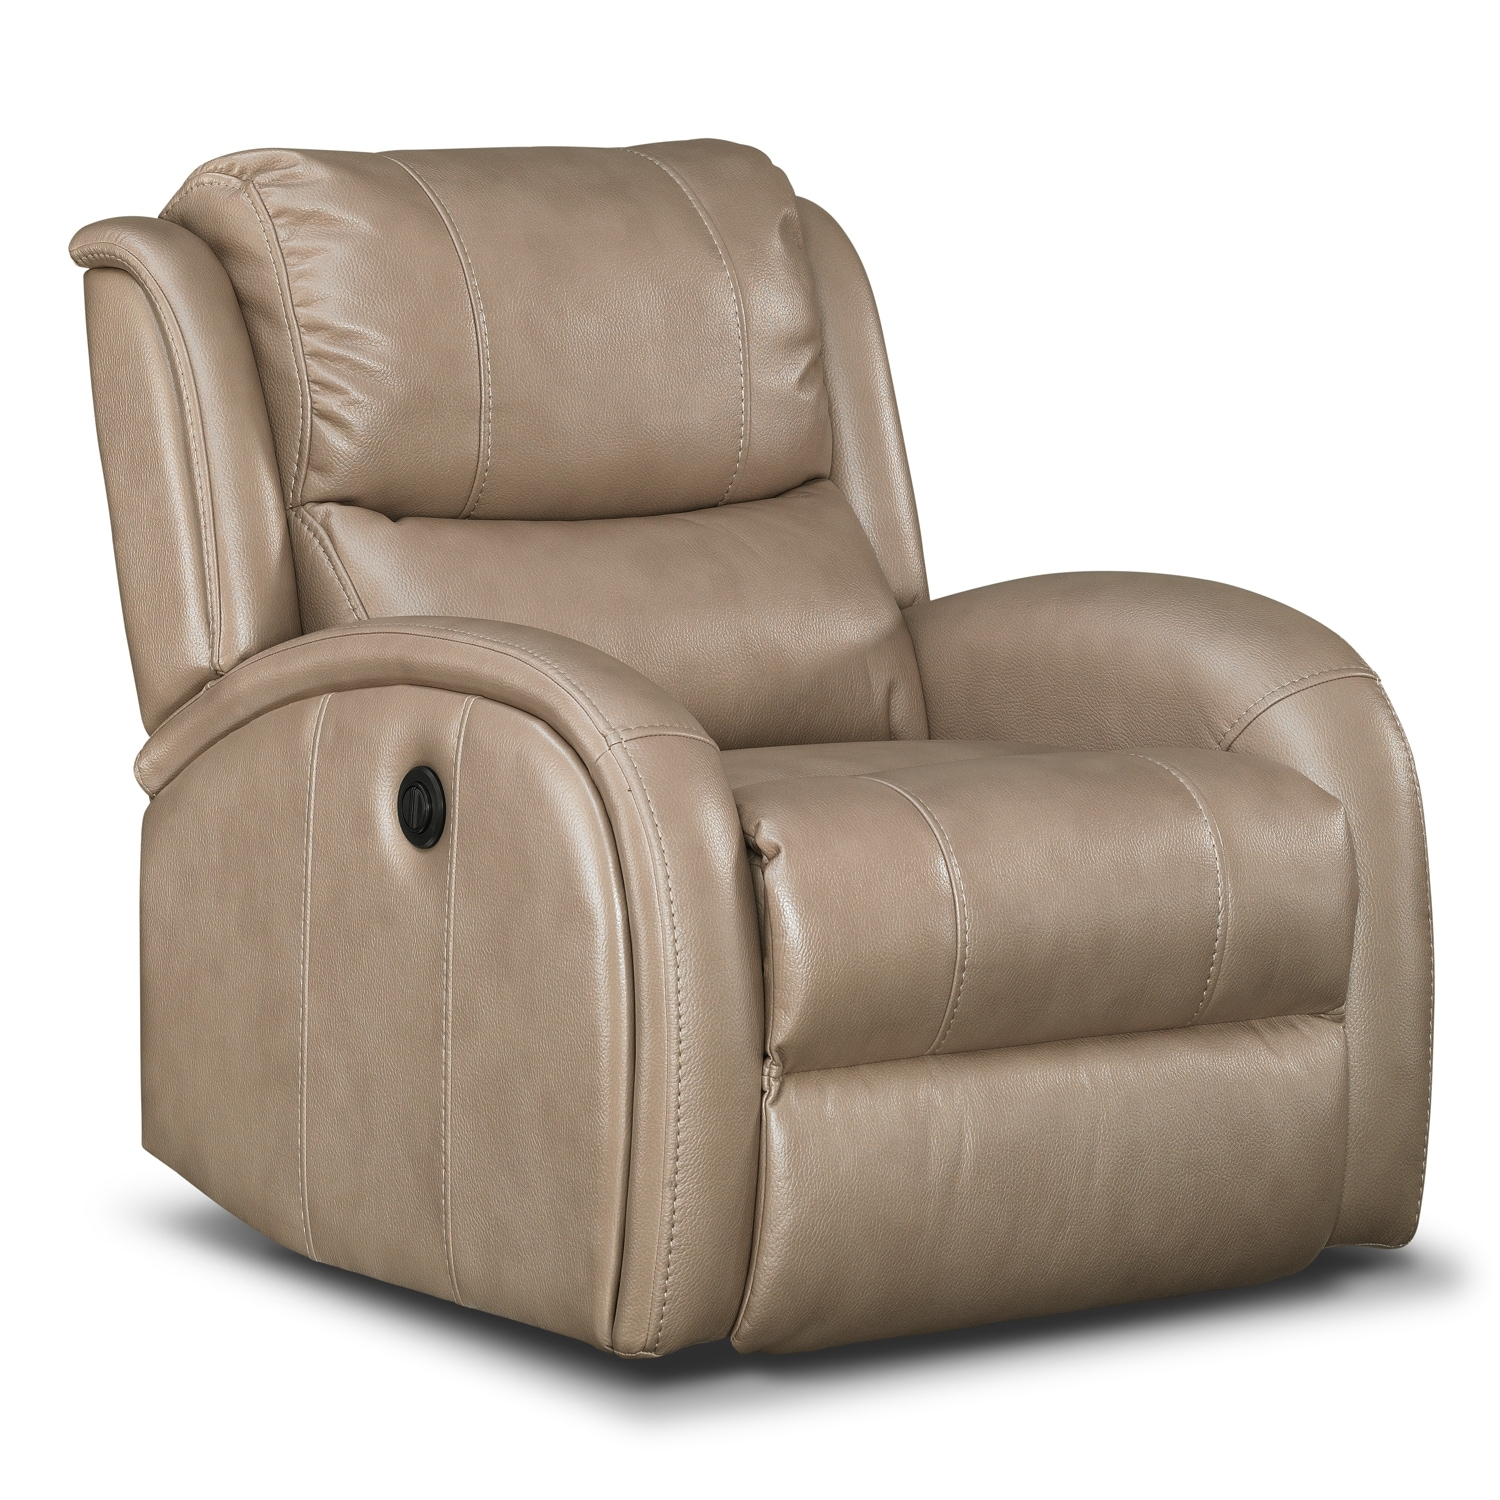 American Signature Furniture Corsica Leather Power Recliner